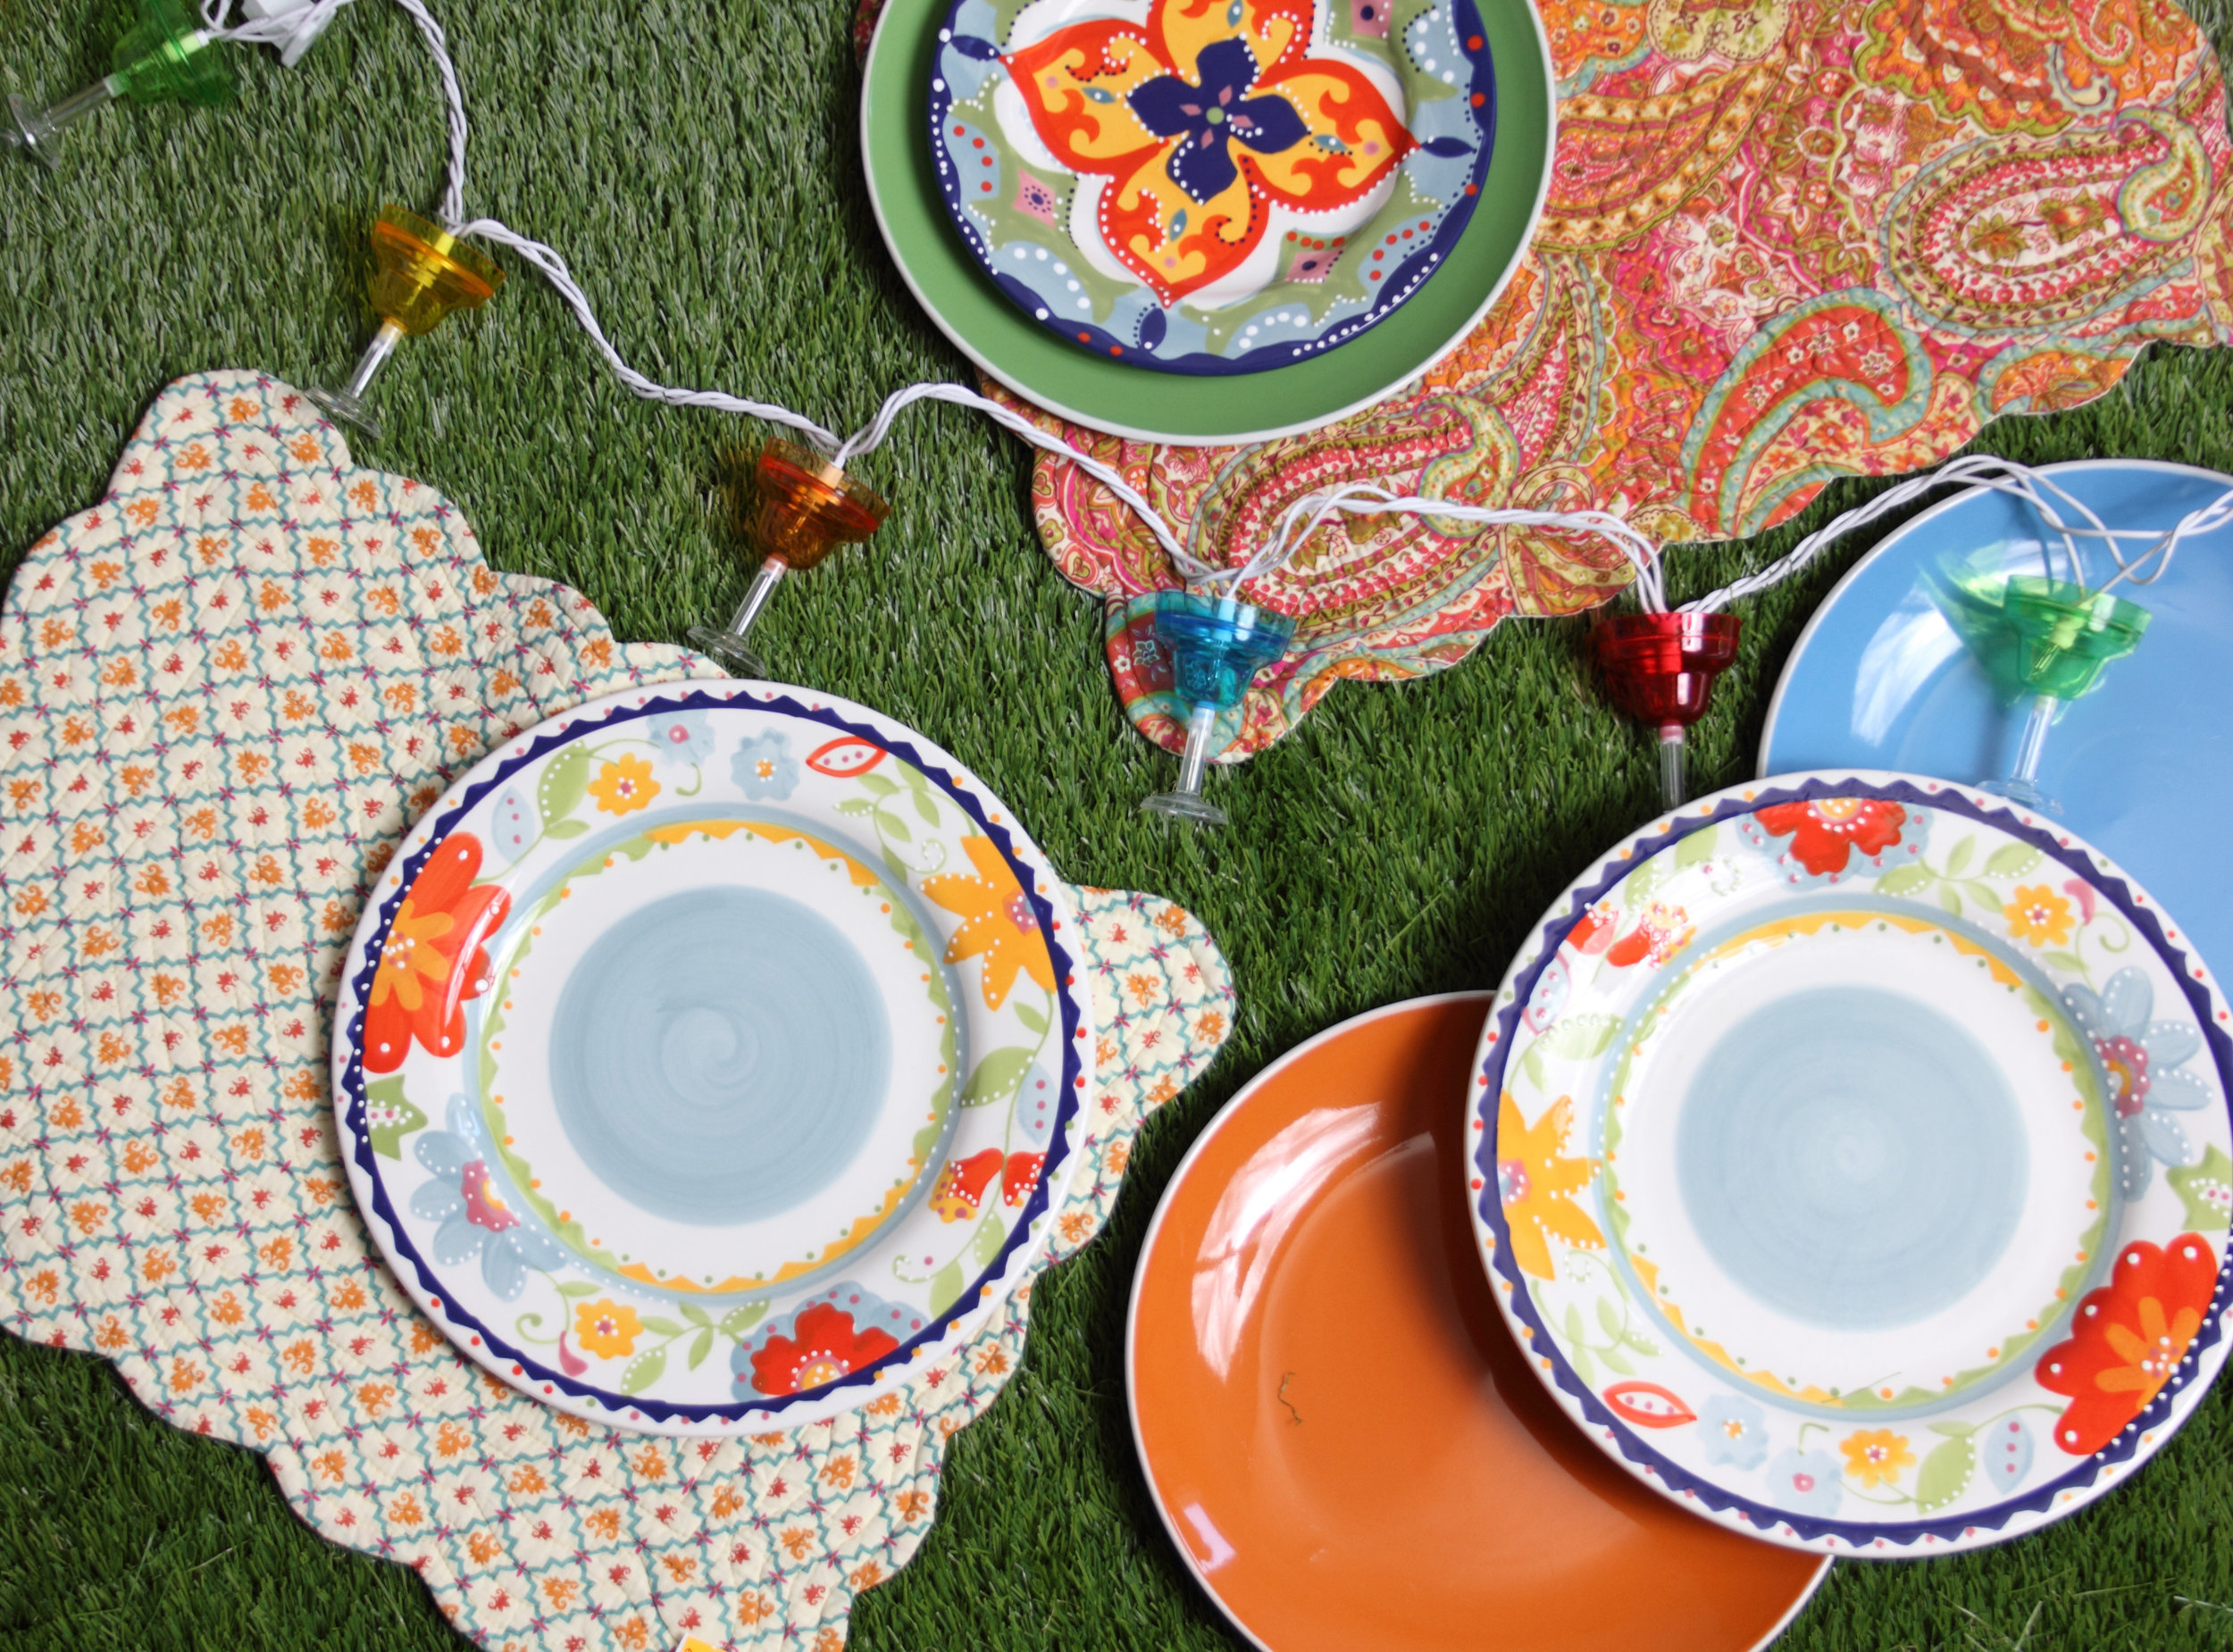 Tabletop Decor at Prairie Gardens, Champaign IL - July 2017 Summer Yard Sale - Selection May Vary